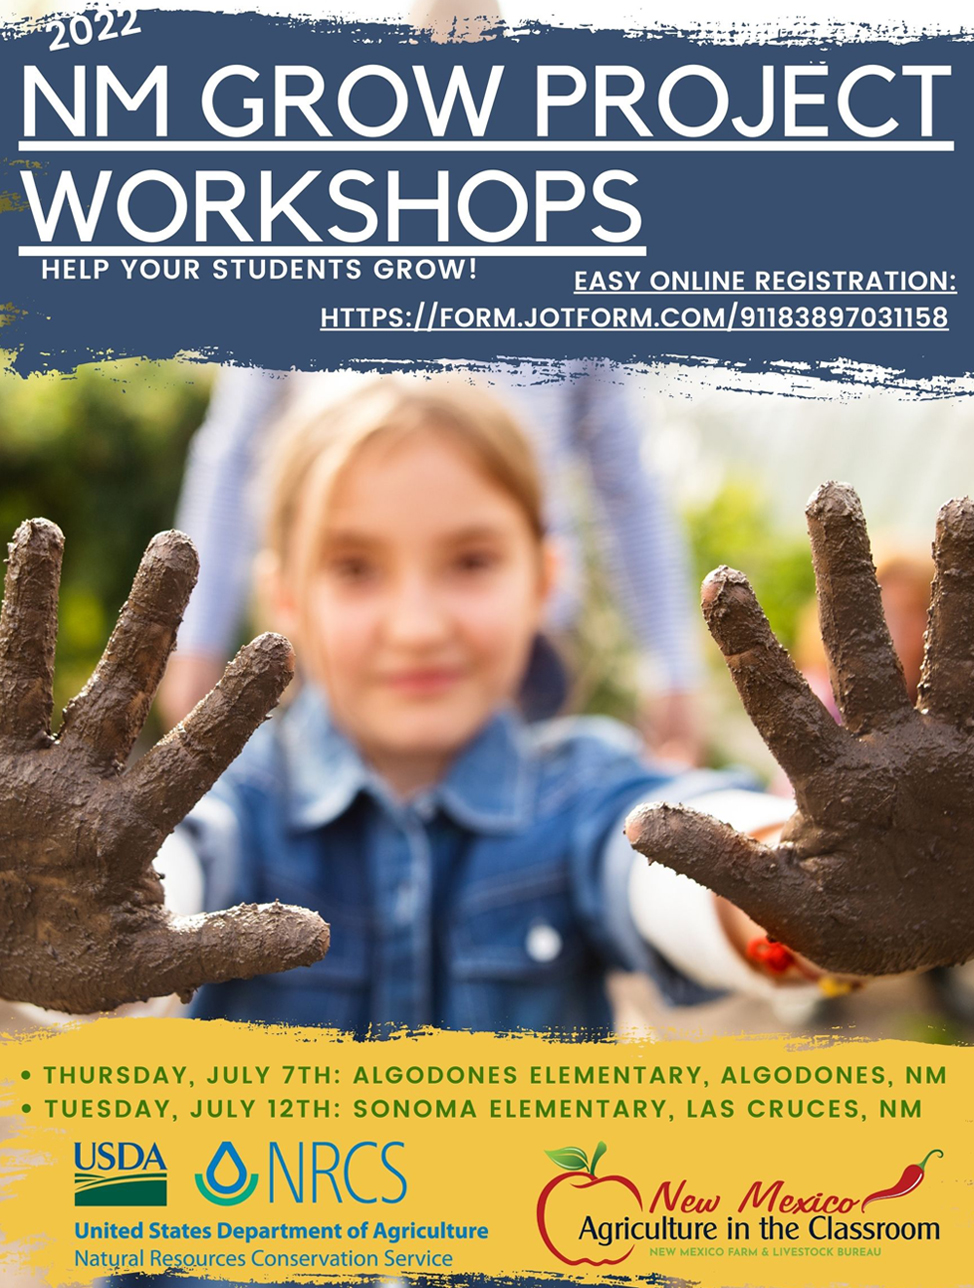 New Mexico Grow Project Grant